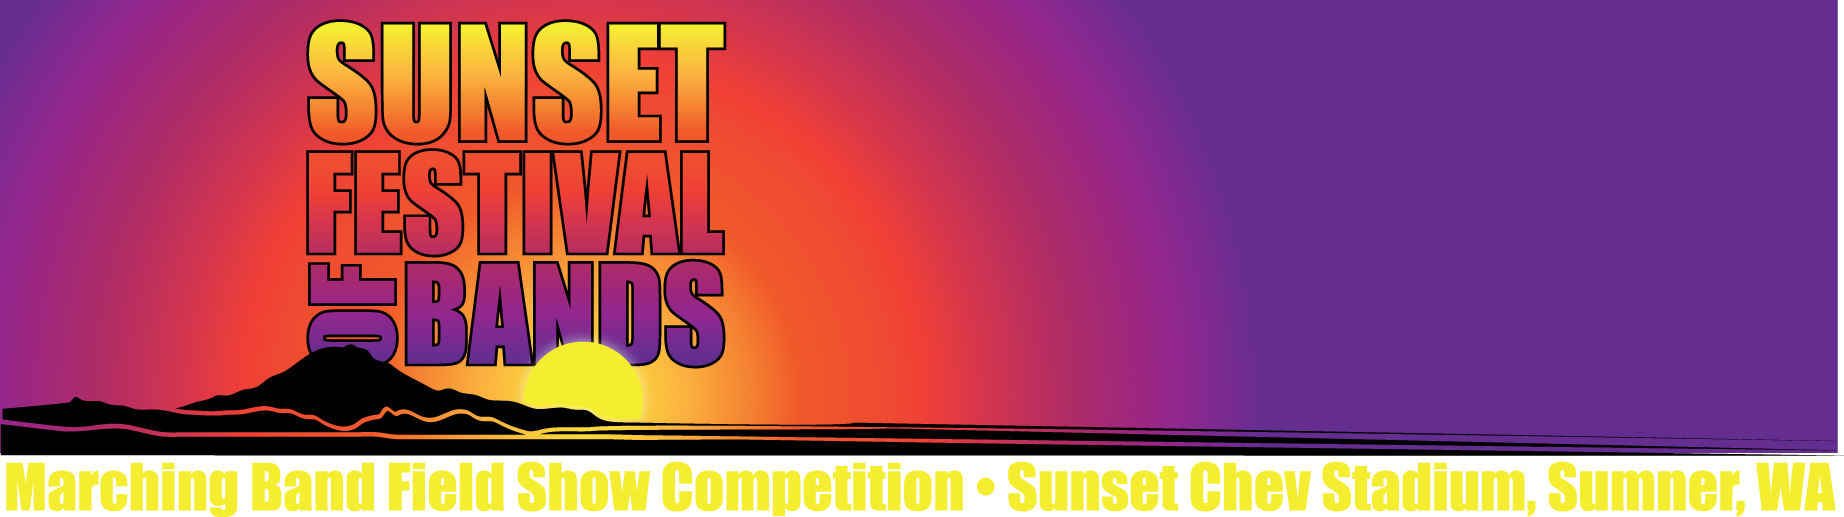 Sunset Festival of Bands header